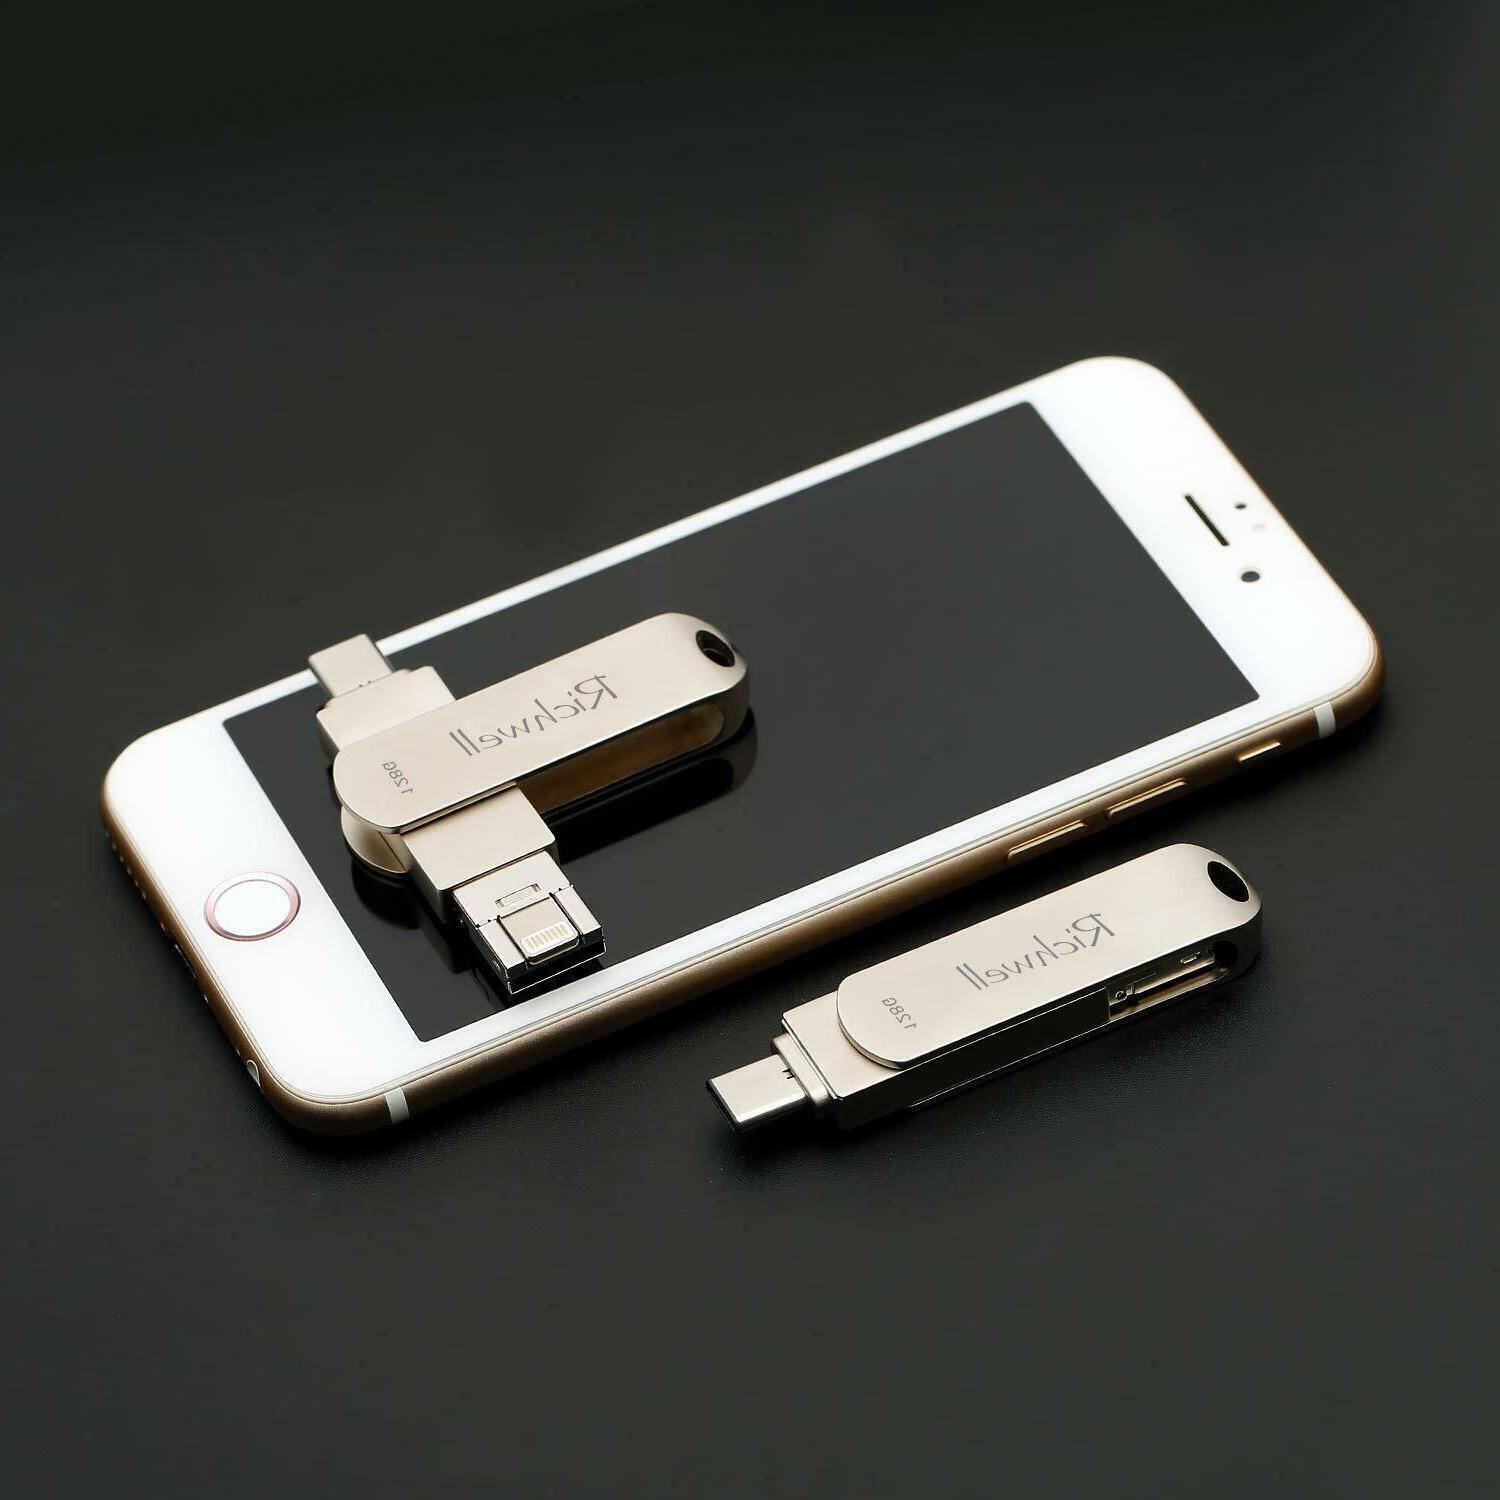 64GB/128GB 1 OTG 3.0 Drive for Android, USB PC